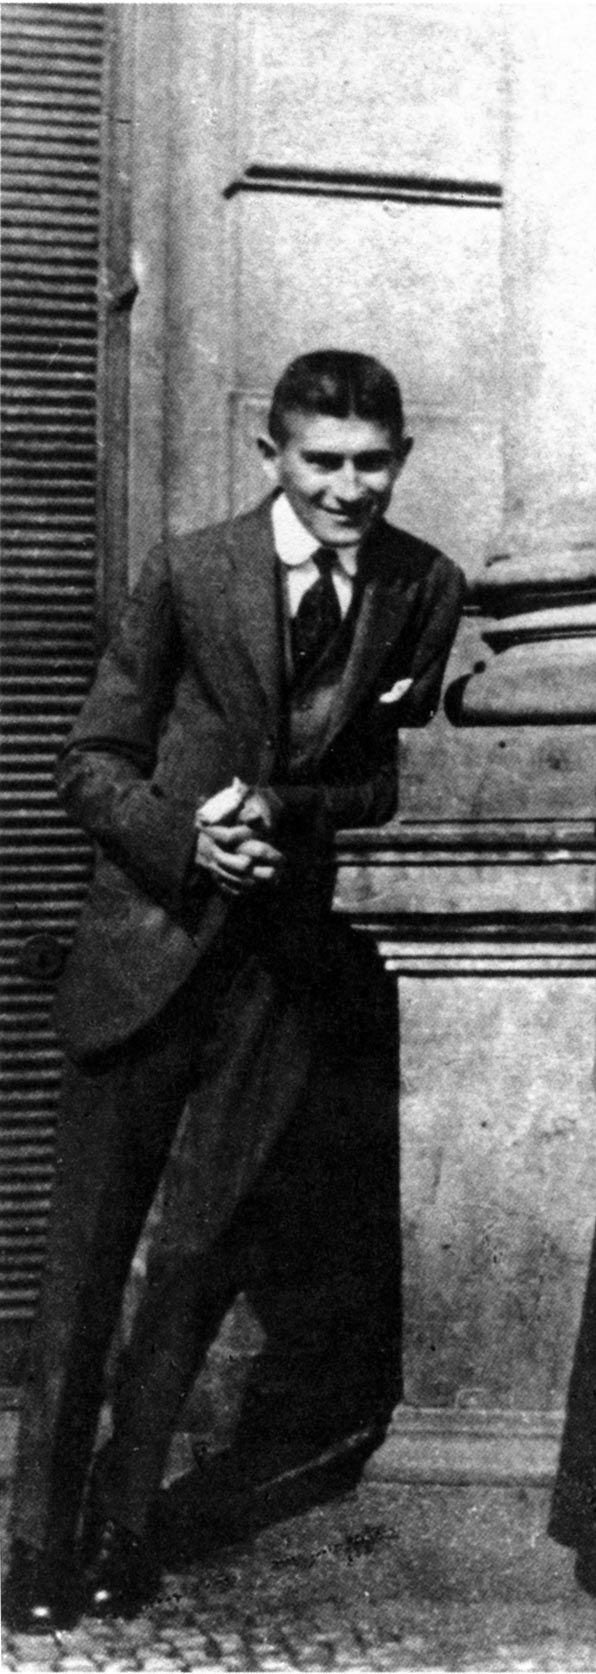 Franz Kafka, never published his novels, left instructions to have them published after he died !